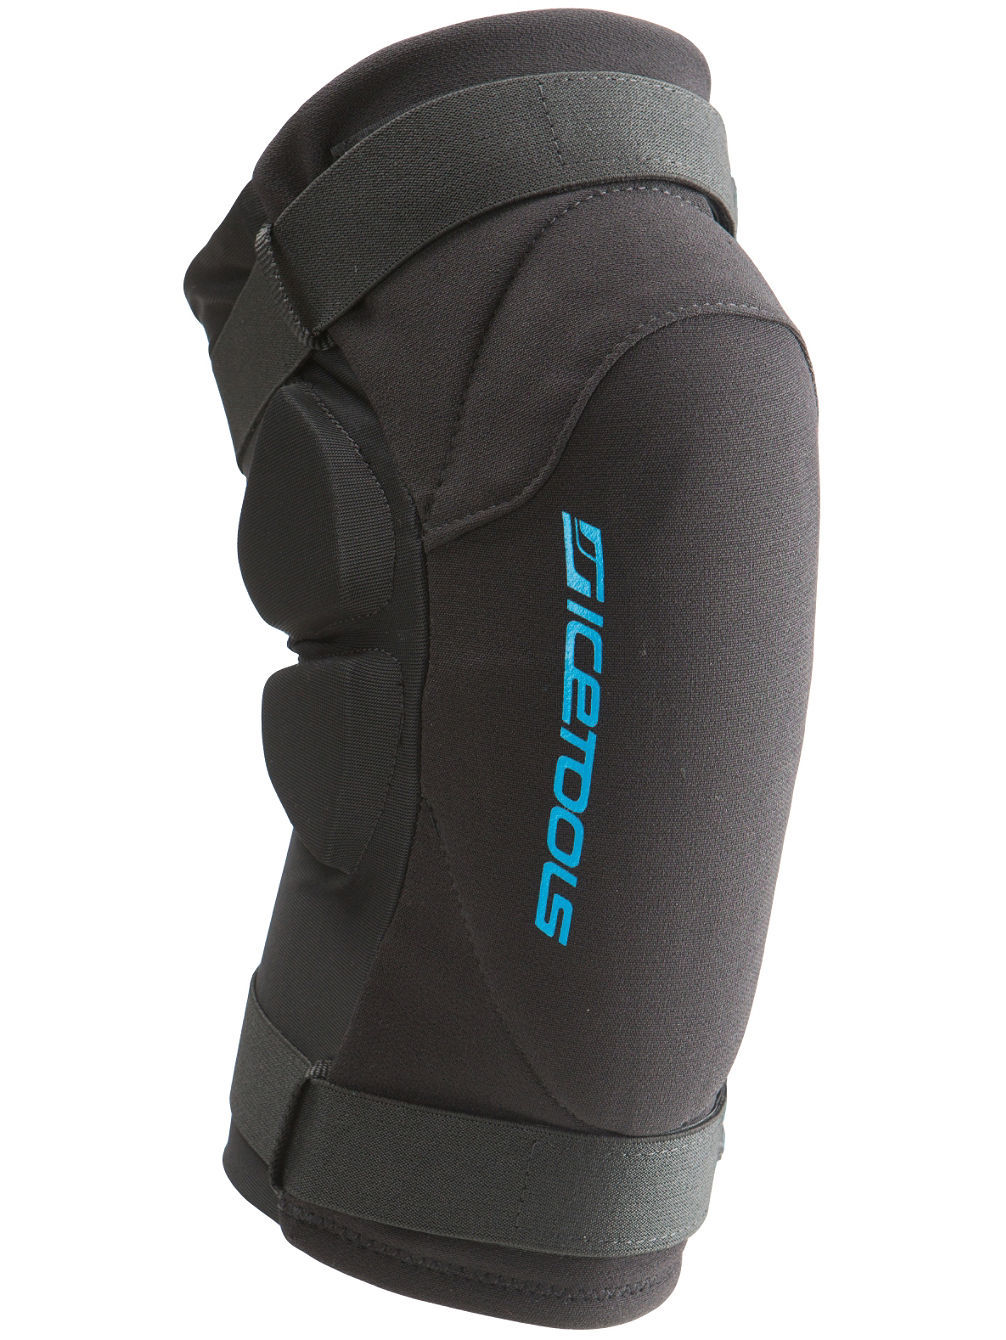 icetools-knee-guard